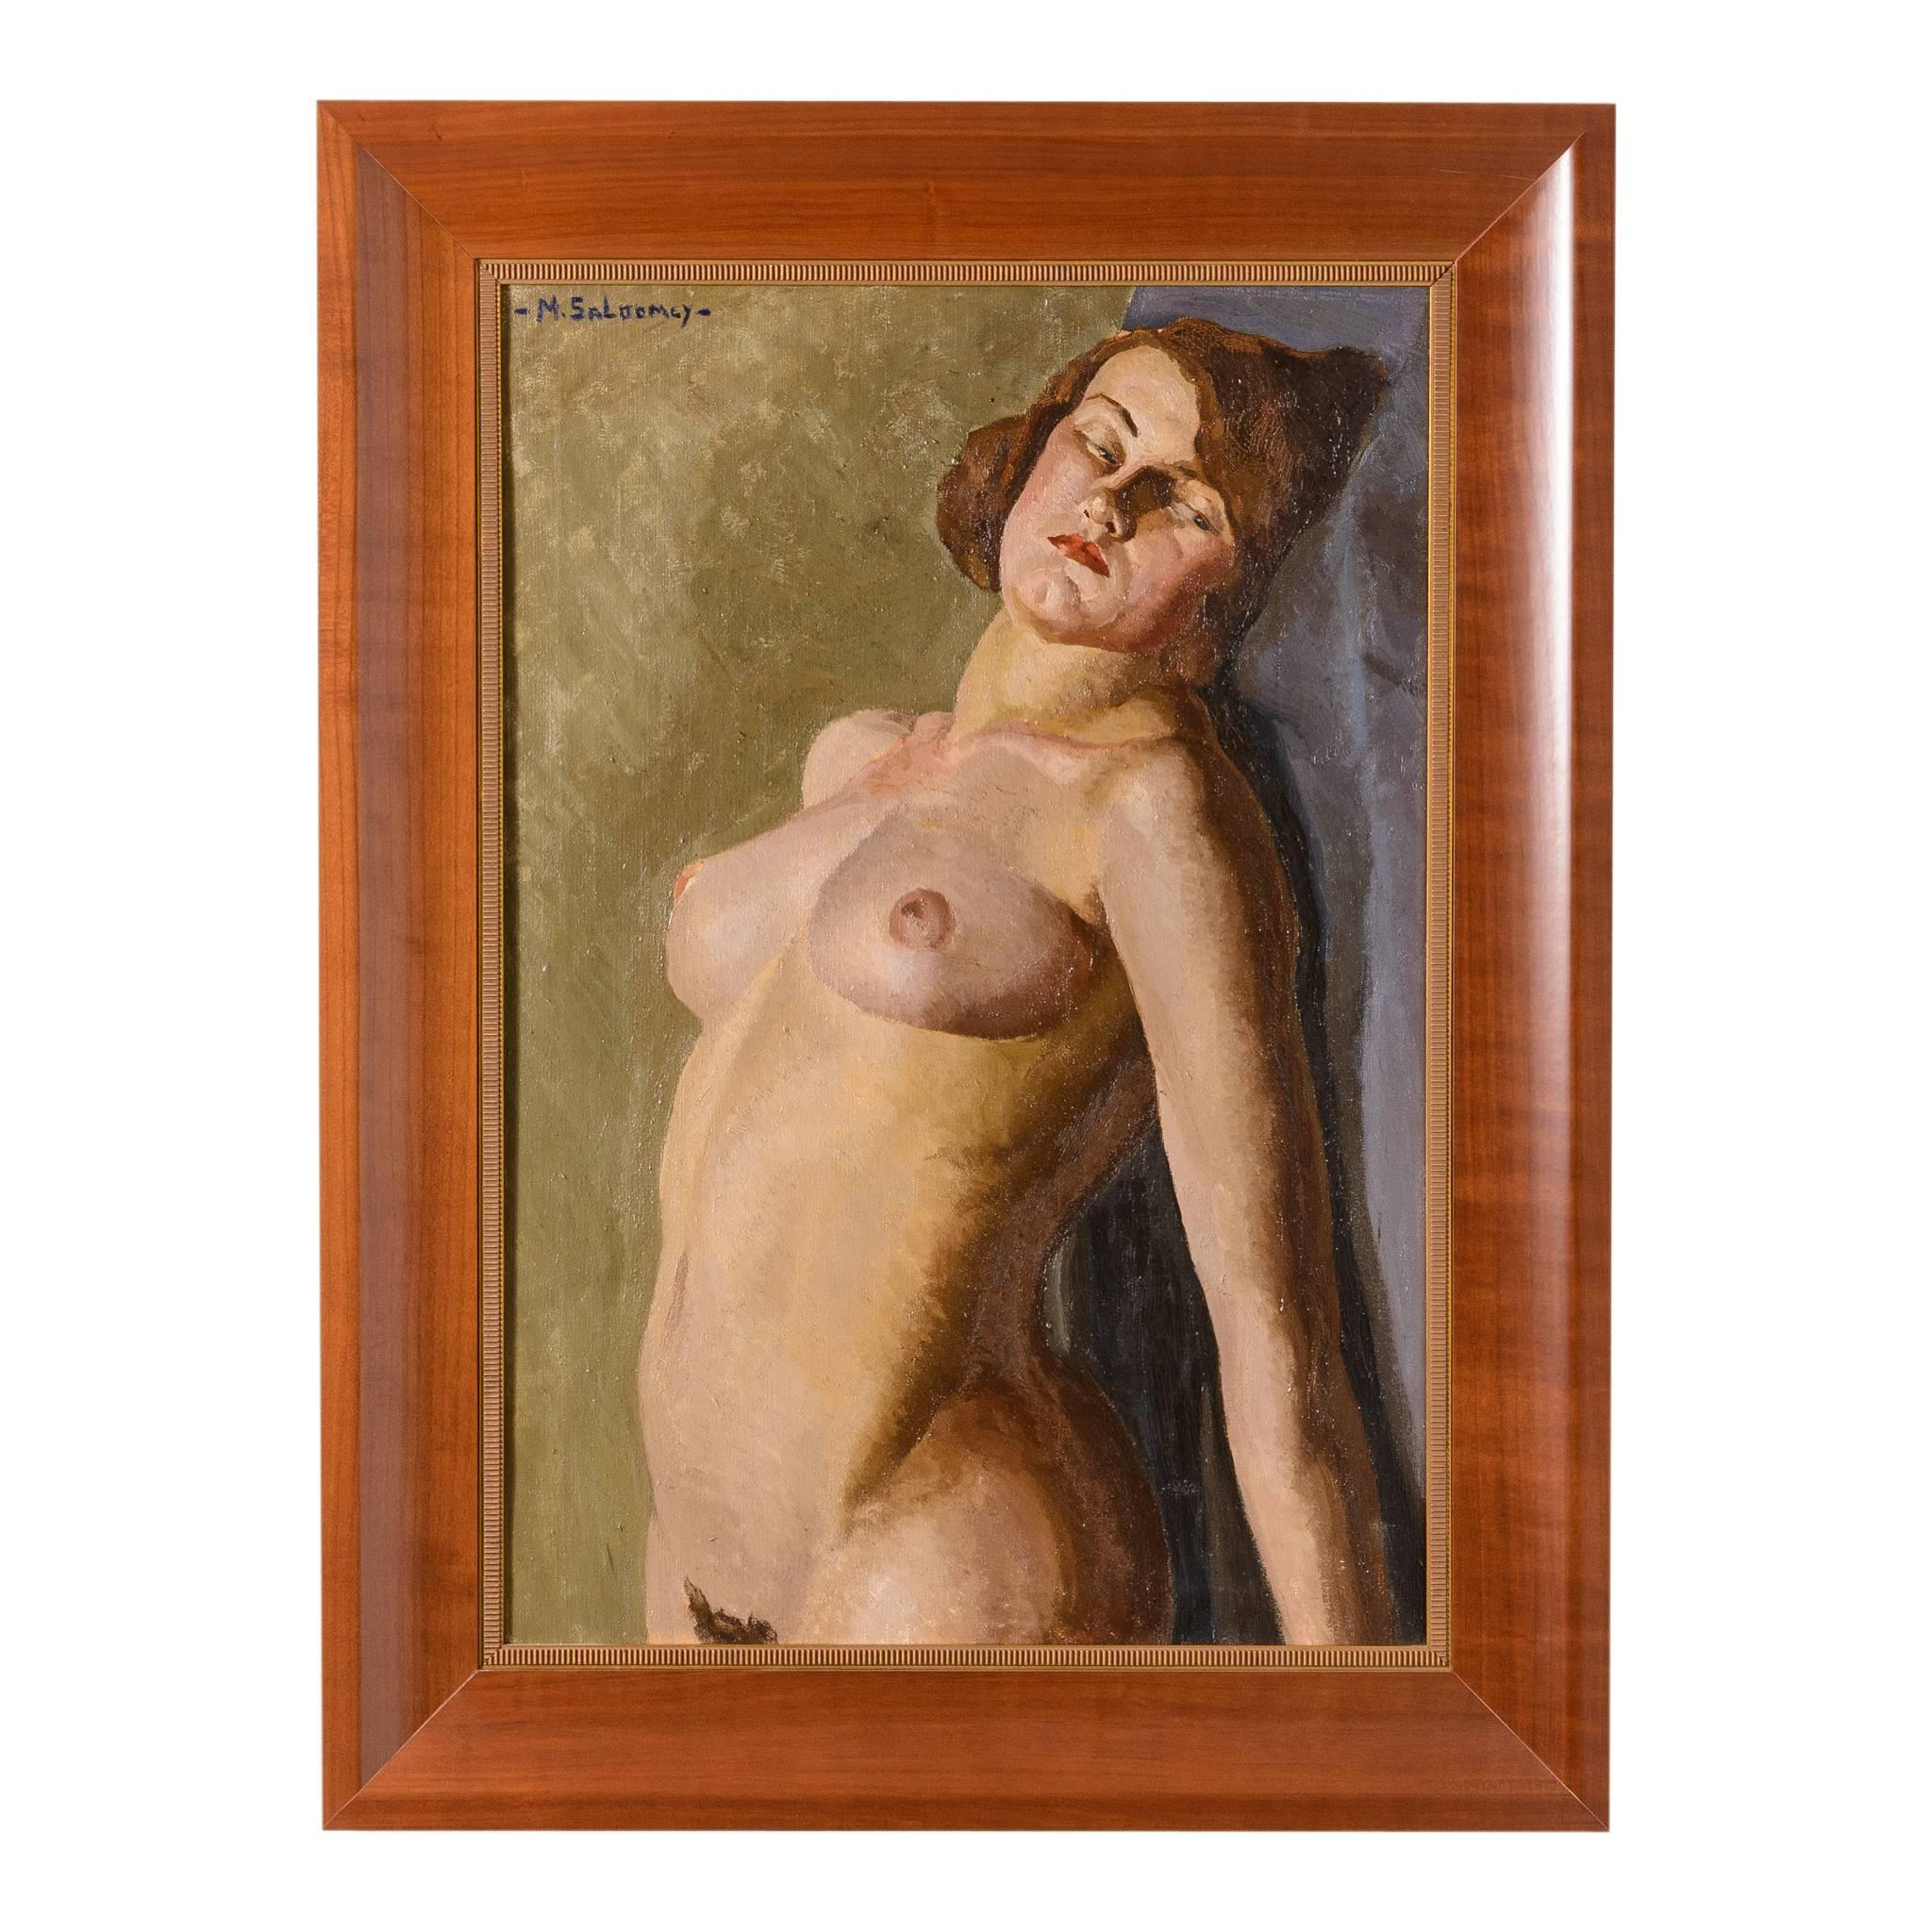 Art Deco Painting of a Female Nude by Mabel Kaiser Saloomey